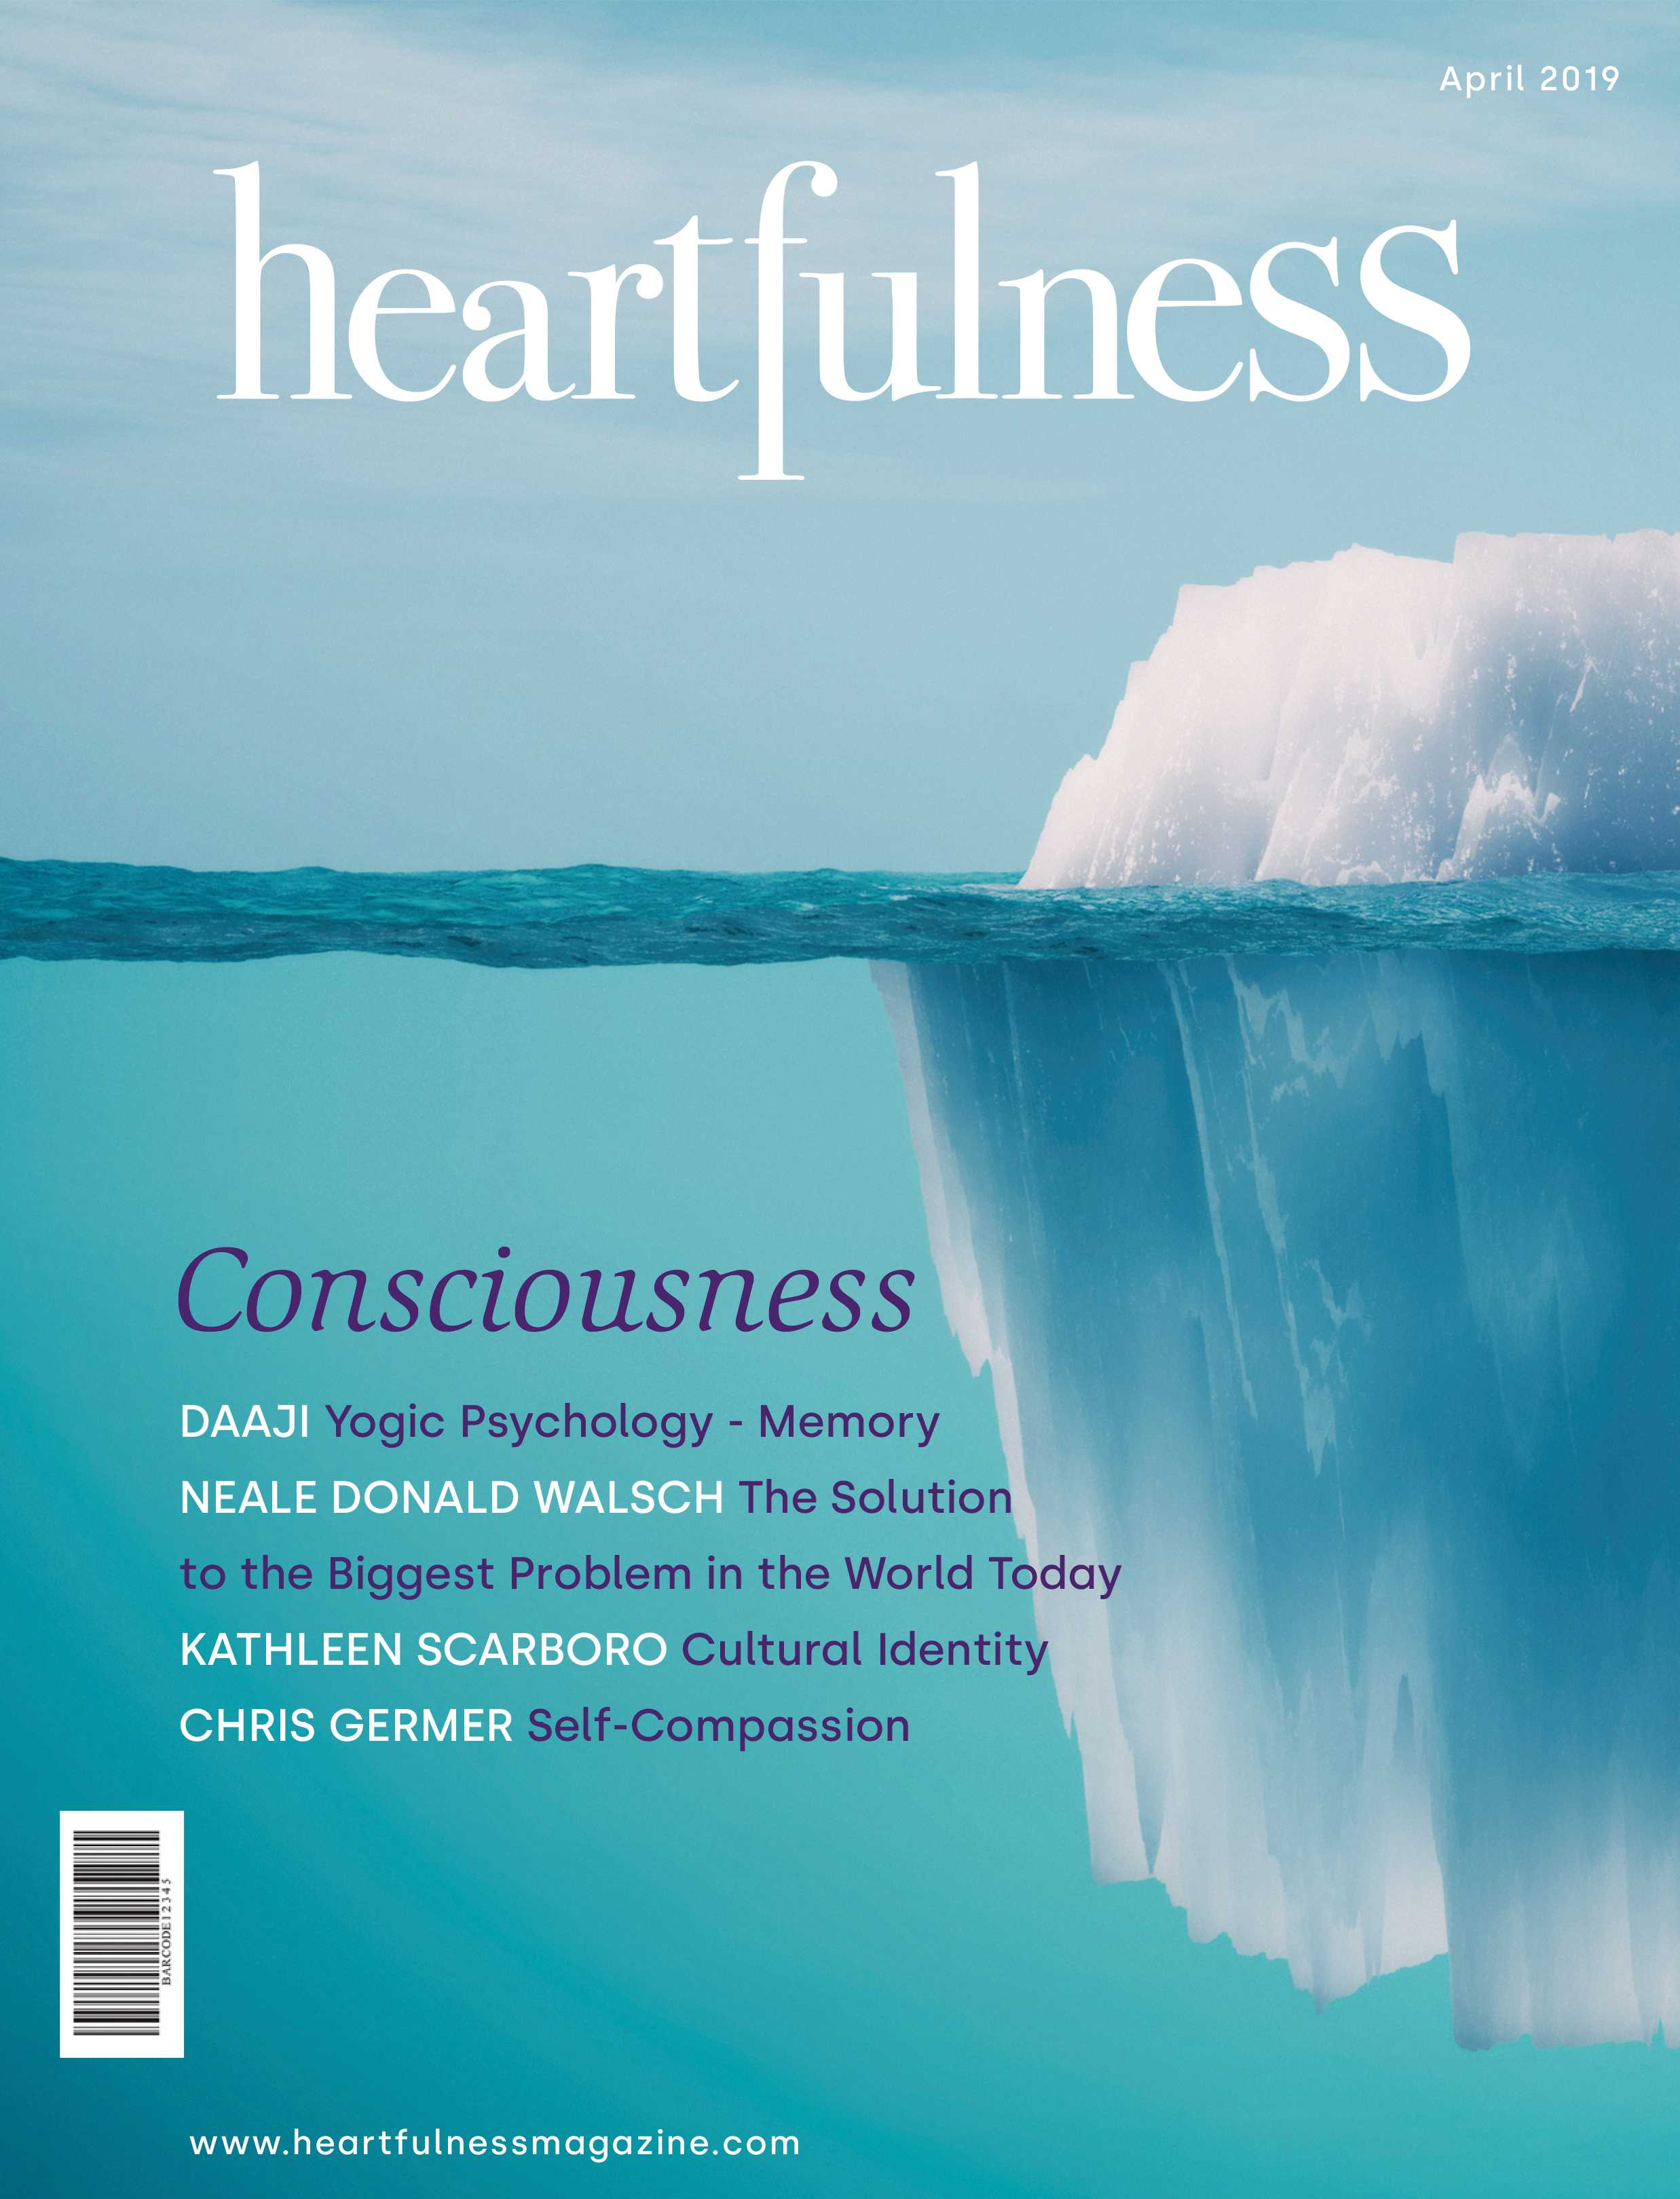 Heartfulness eMagazine – April 2019